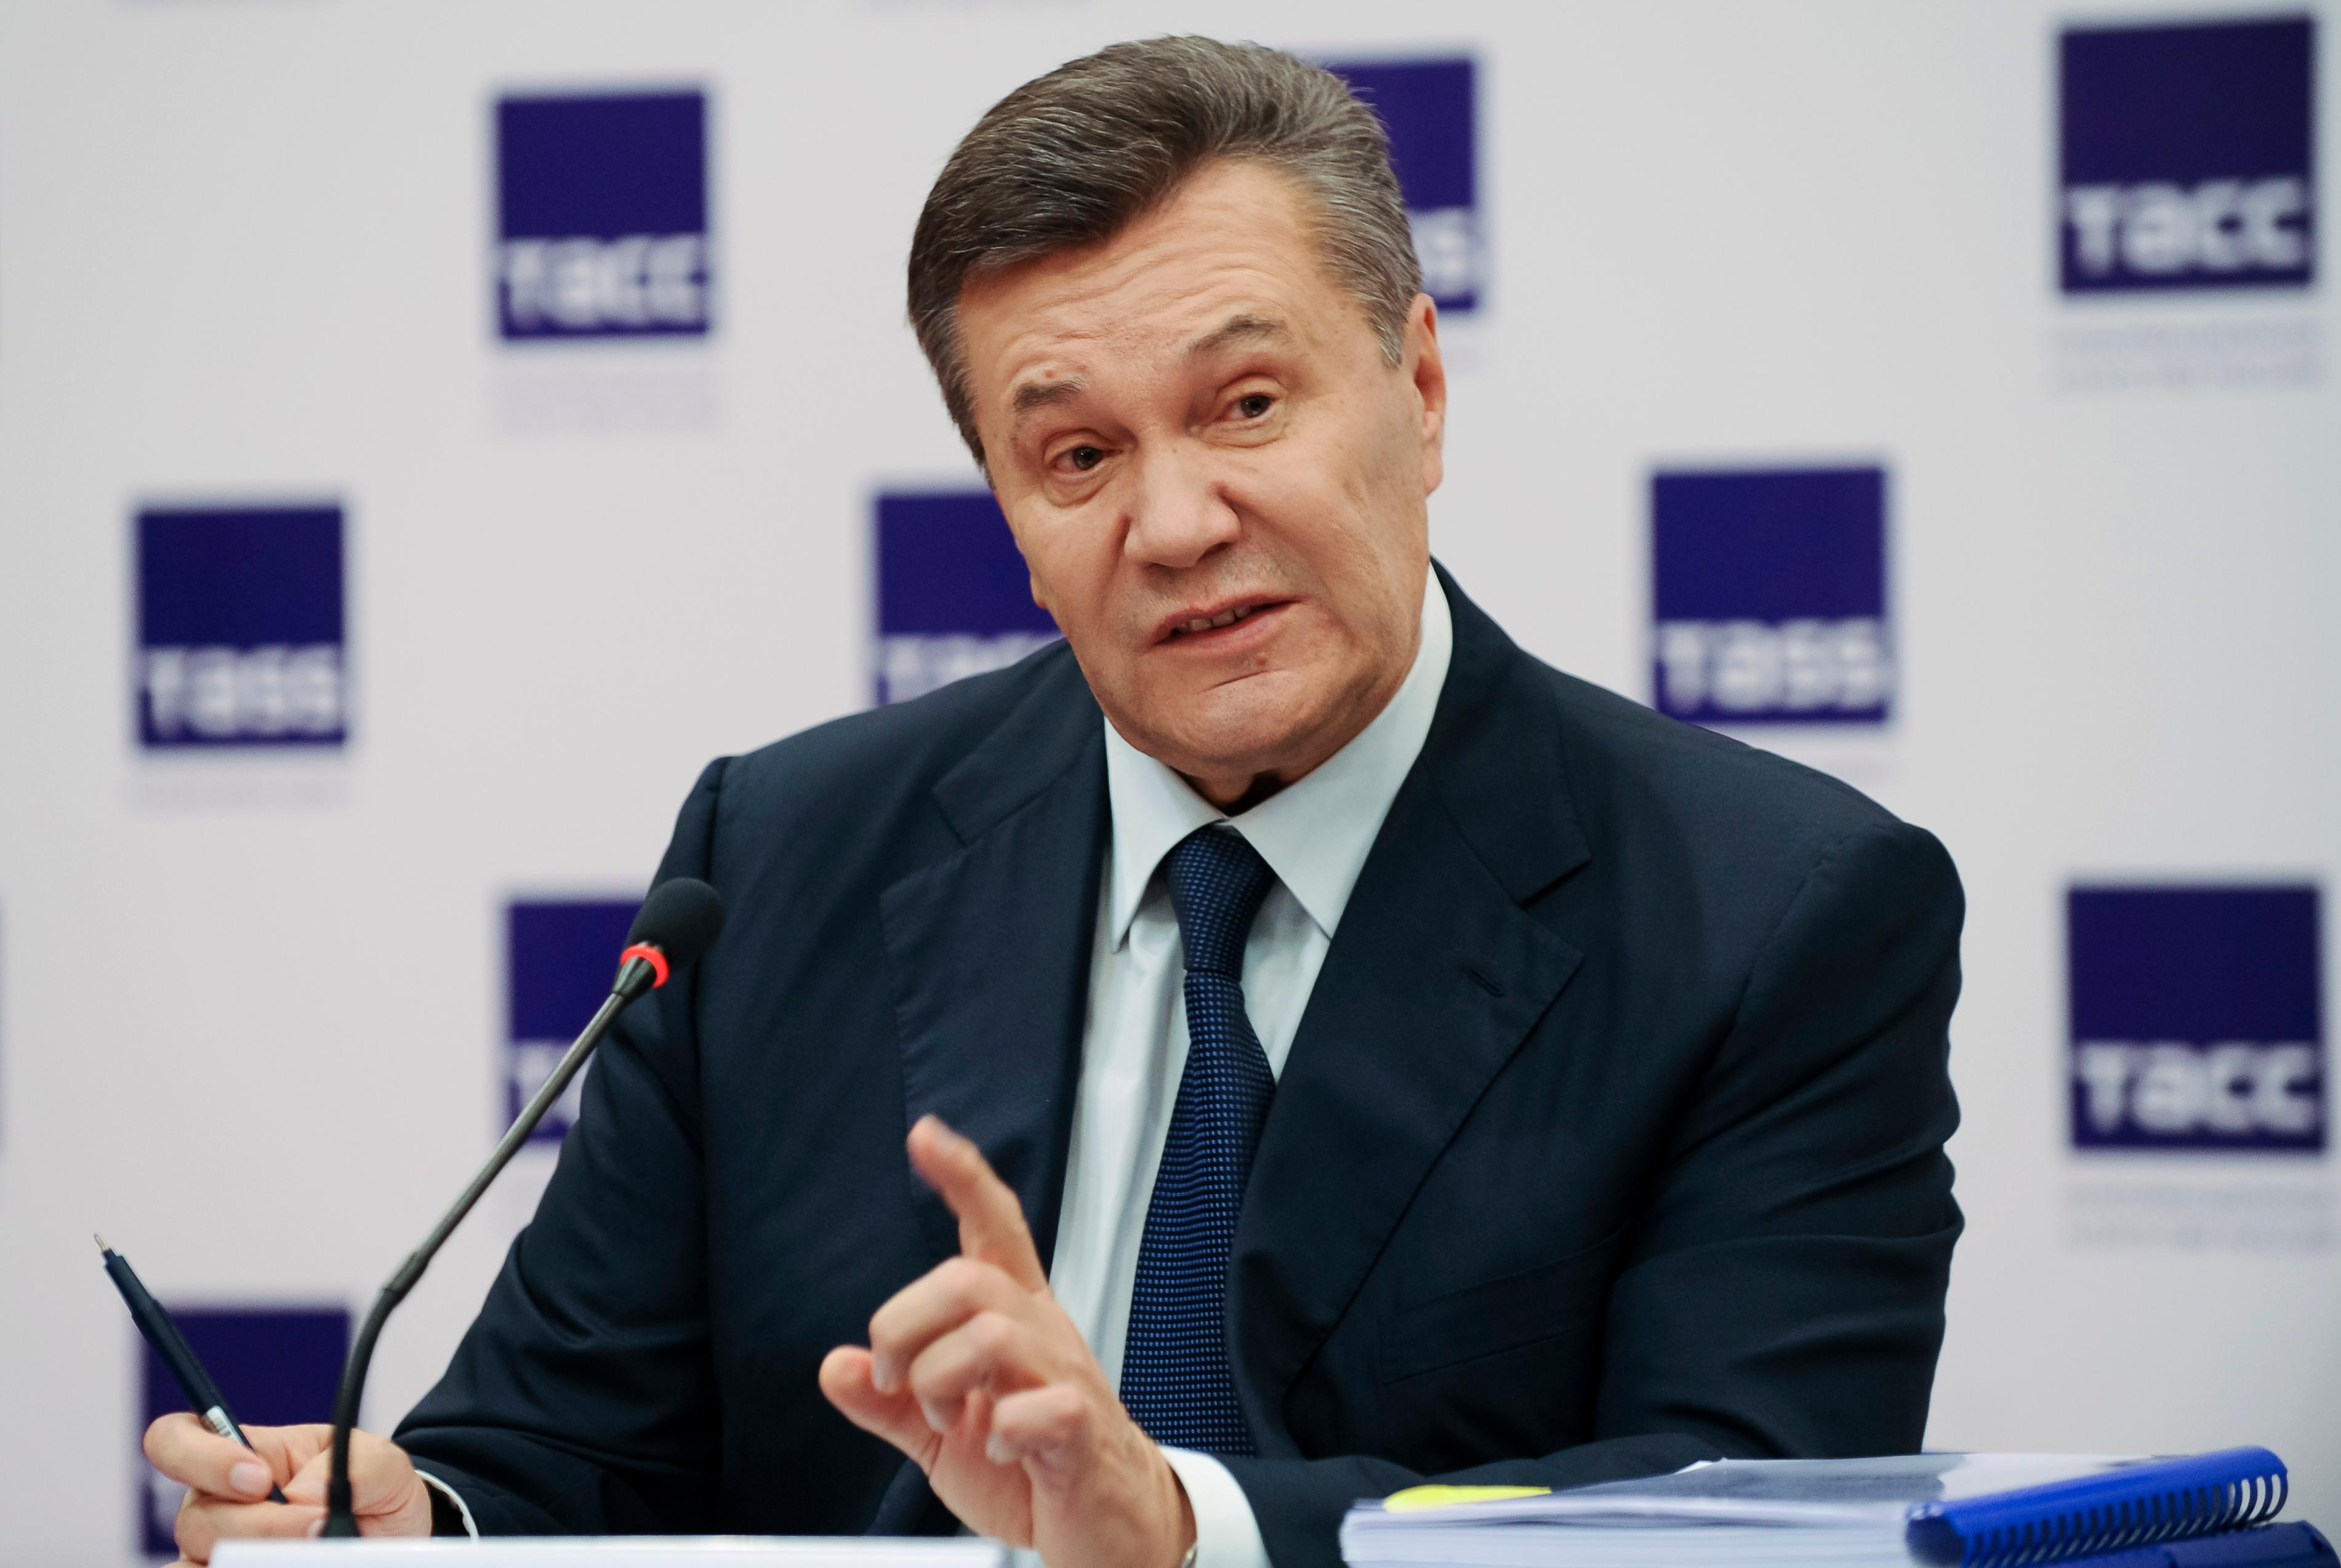 FILE - In this file photo dated Friday, Nov. 25, 2016, Ukraine's ousted president Viktor Yanukovych gestures as he speaks at a news conference in Rostov-on-Don, Russia.  Ukrainian opposition lawmaker Serhiy Leshchenko, who helped uncover off-the-books payments to President Donald Trump's former campaign chairman Paul Manafort, said Saturday Feb. 24, 2018, a one-time Austrian chancellor was among the European politicians secretly paid to lobby for Ukraine and its then president Yanukovych. (AP Photo, FILE)